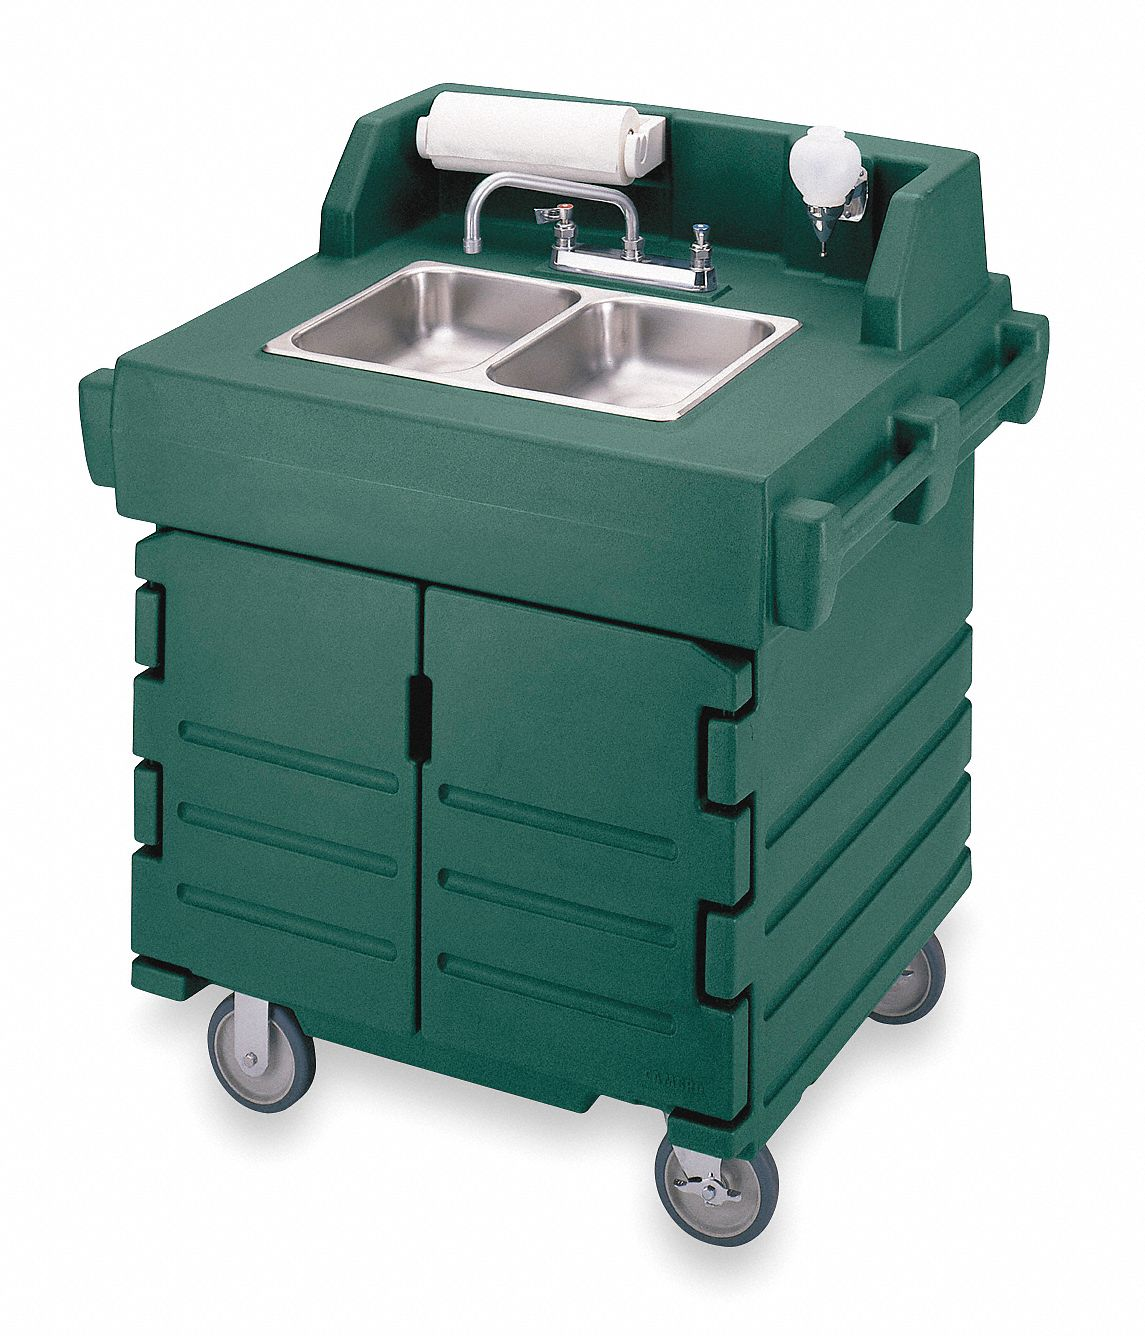 Cambro Double Bowl Hand Sink Cart Polyethylene 45 1 2 Quot X 40 9 16 Quot X 32 1 2 Quot 2mgf3